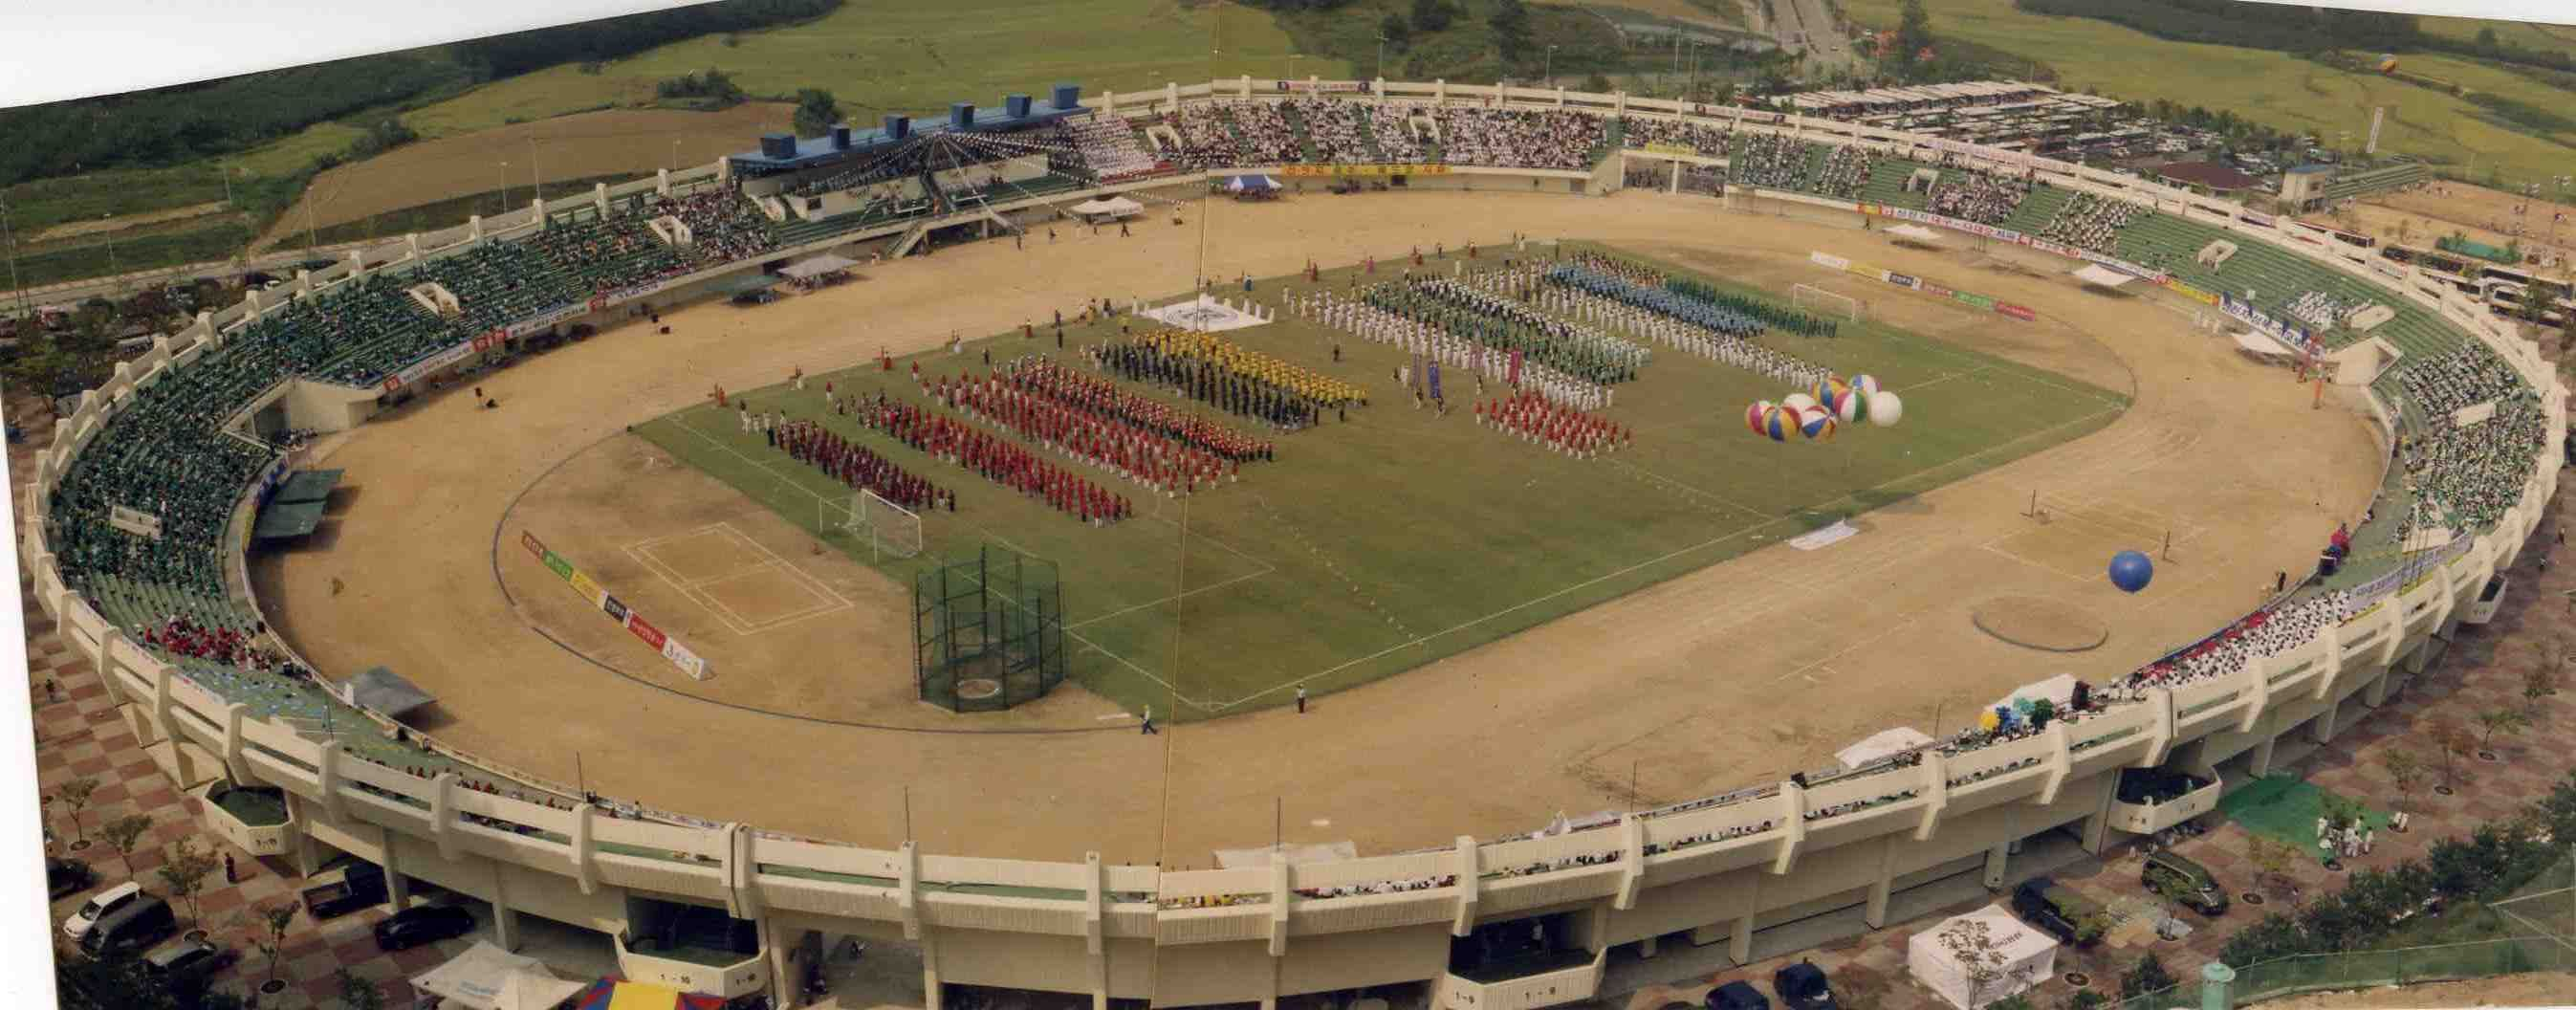 The 3rd Shincheonji National Sports Competition held on 23